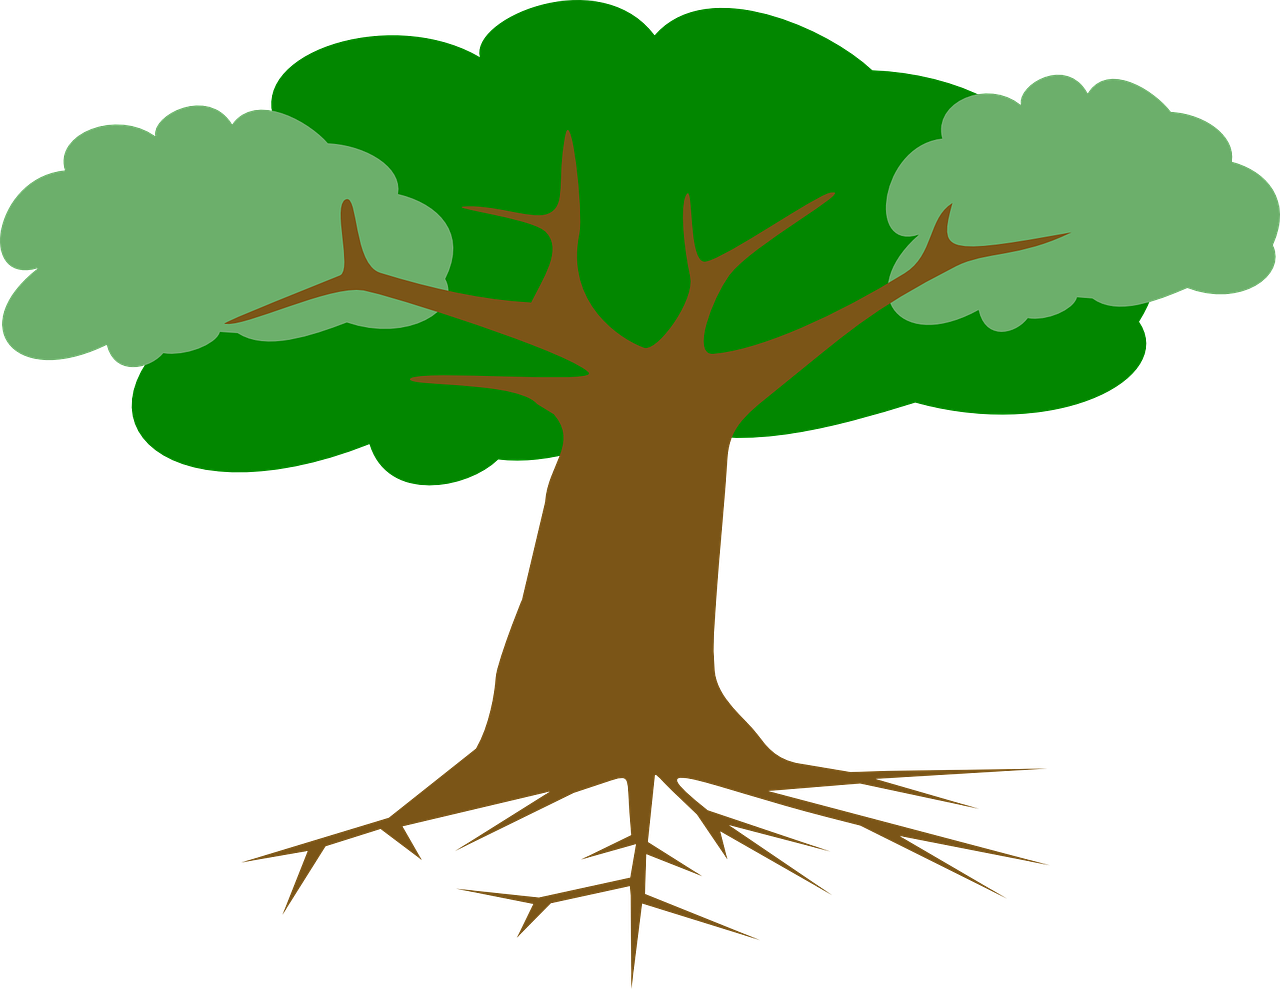 Cross roots clipart svg transparent Tree Roots Leaves Cross Section PNG Image - Picpng svg transparent